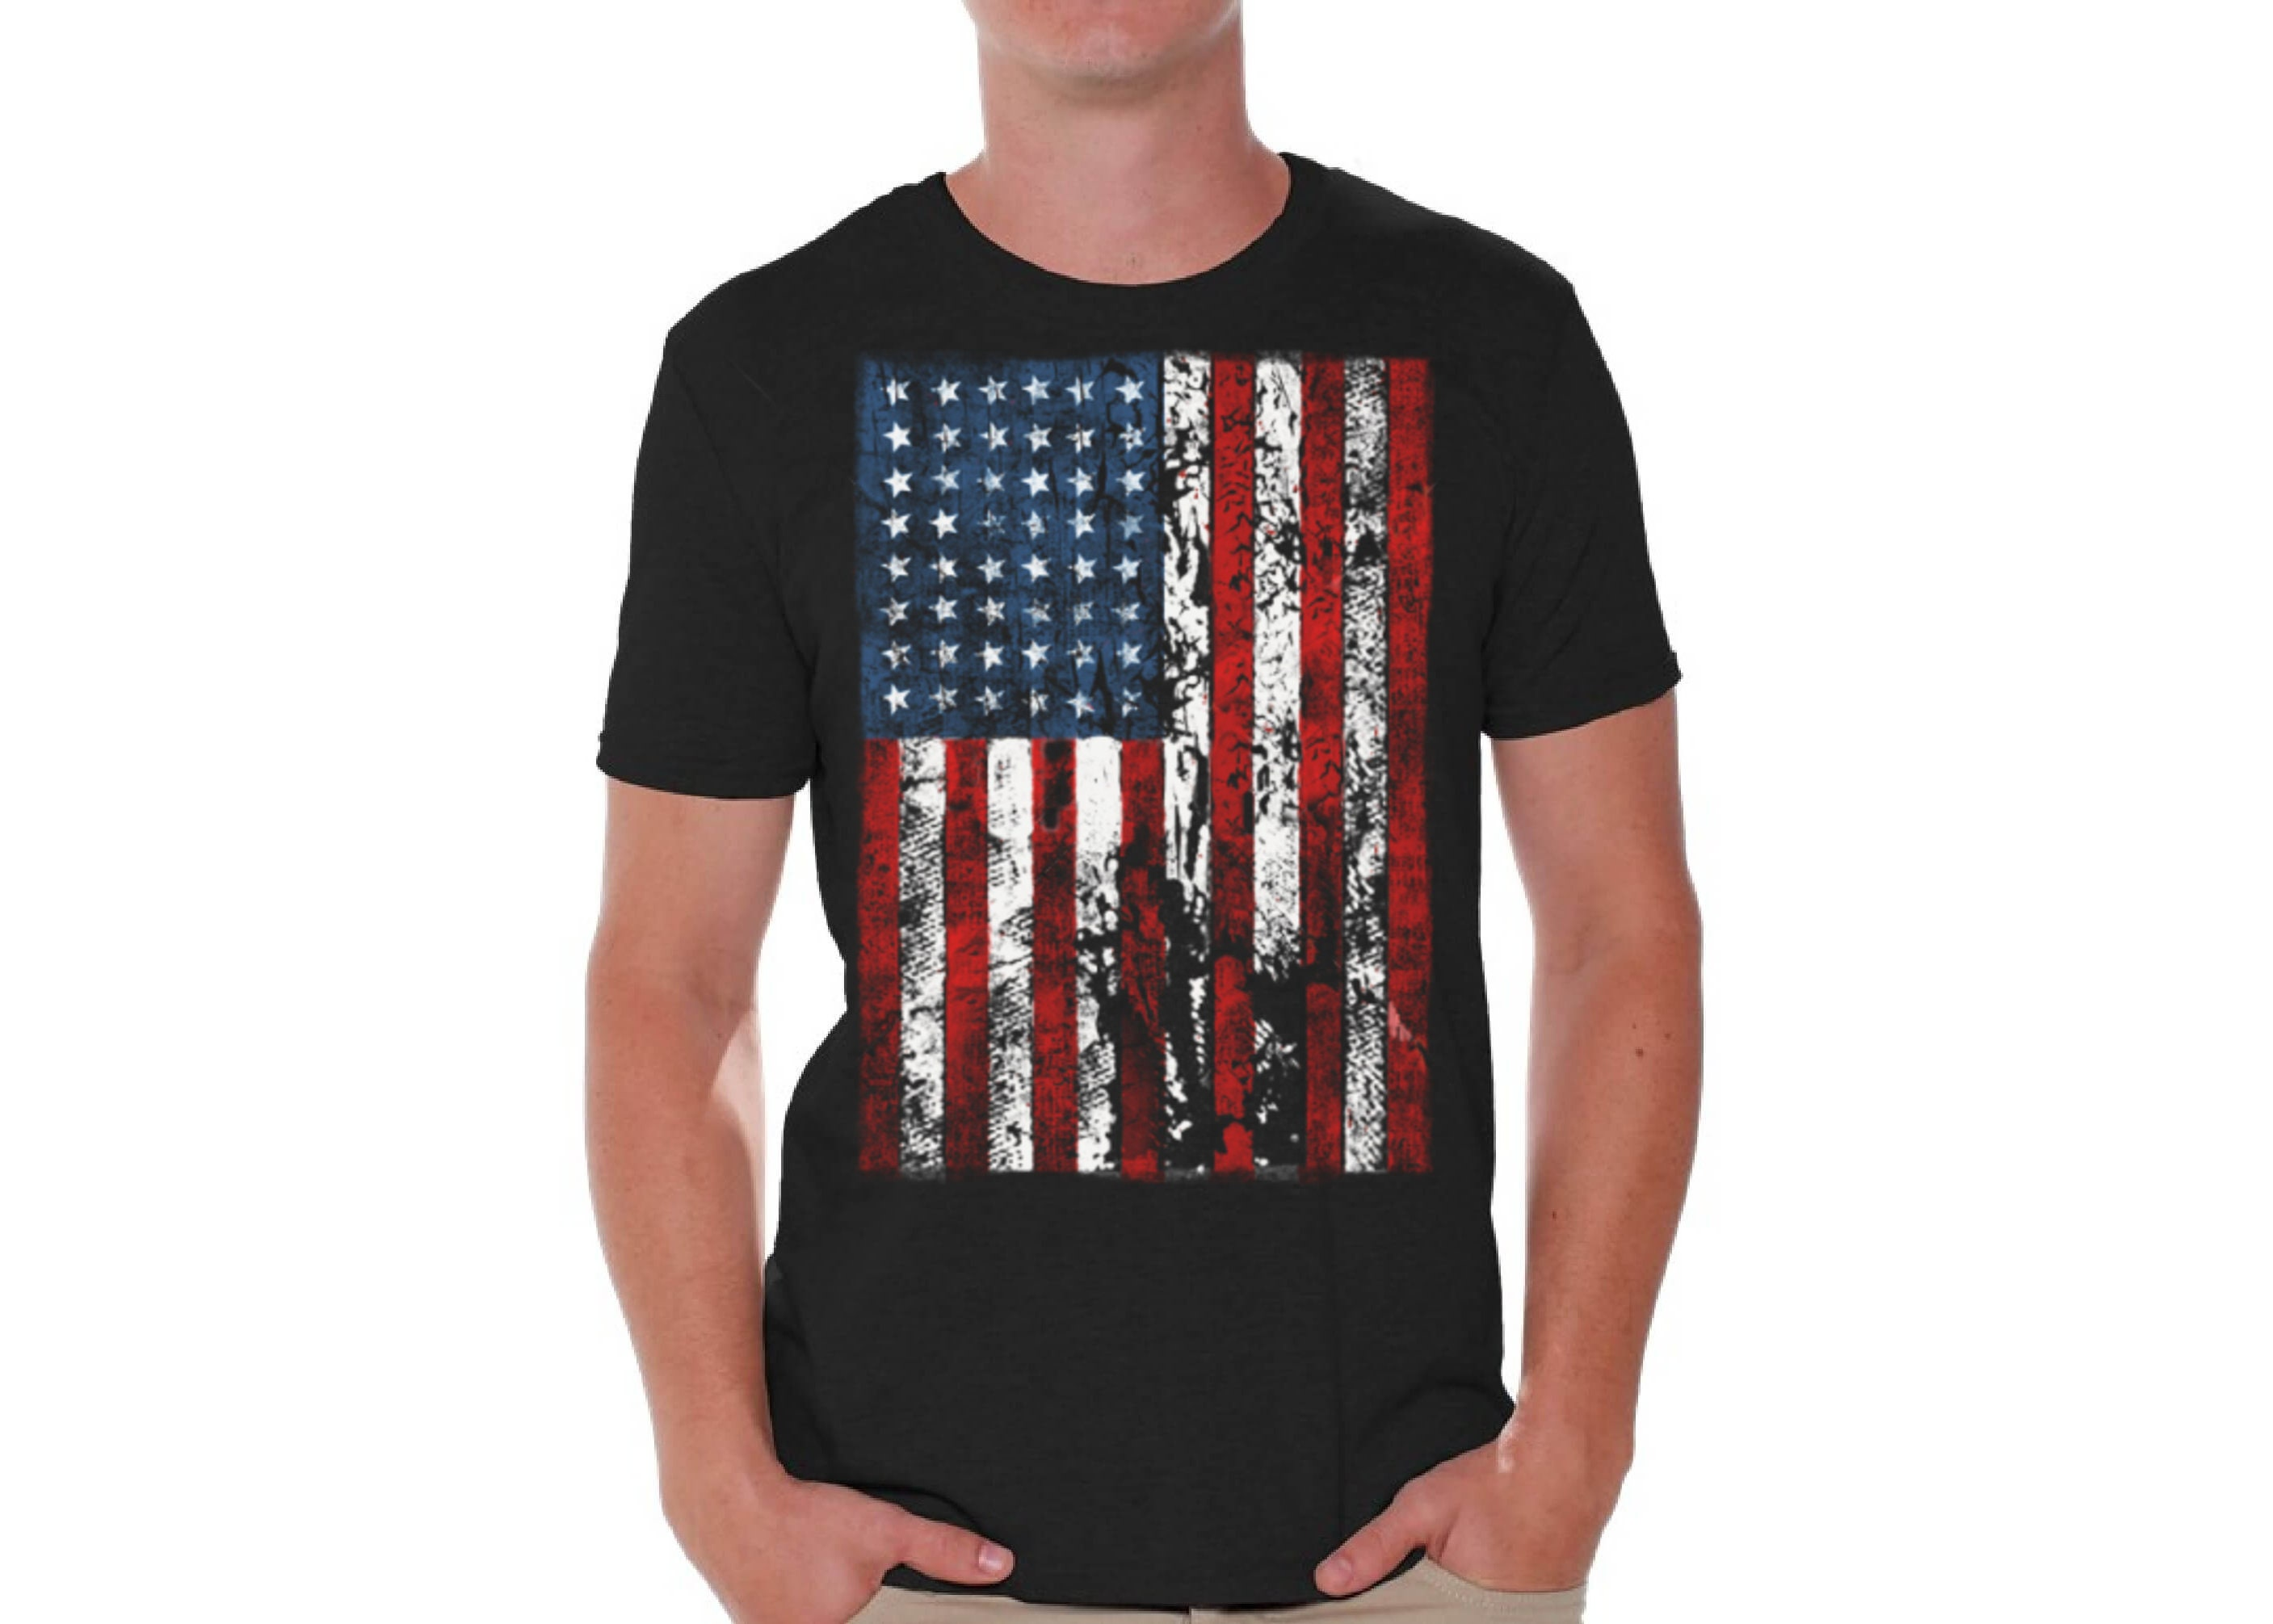 a498ff4a3 American Flag Shirt. America Shirts for Men. America T-Shirt. | Etsy